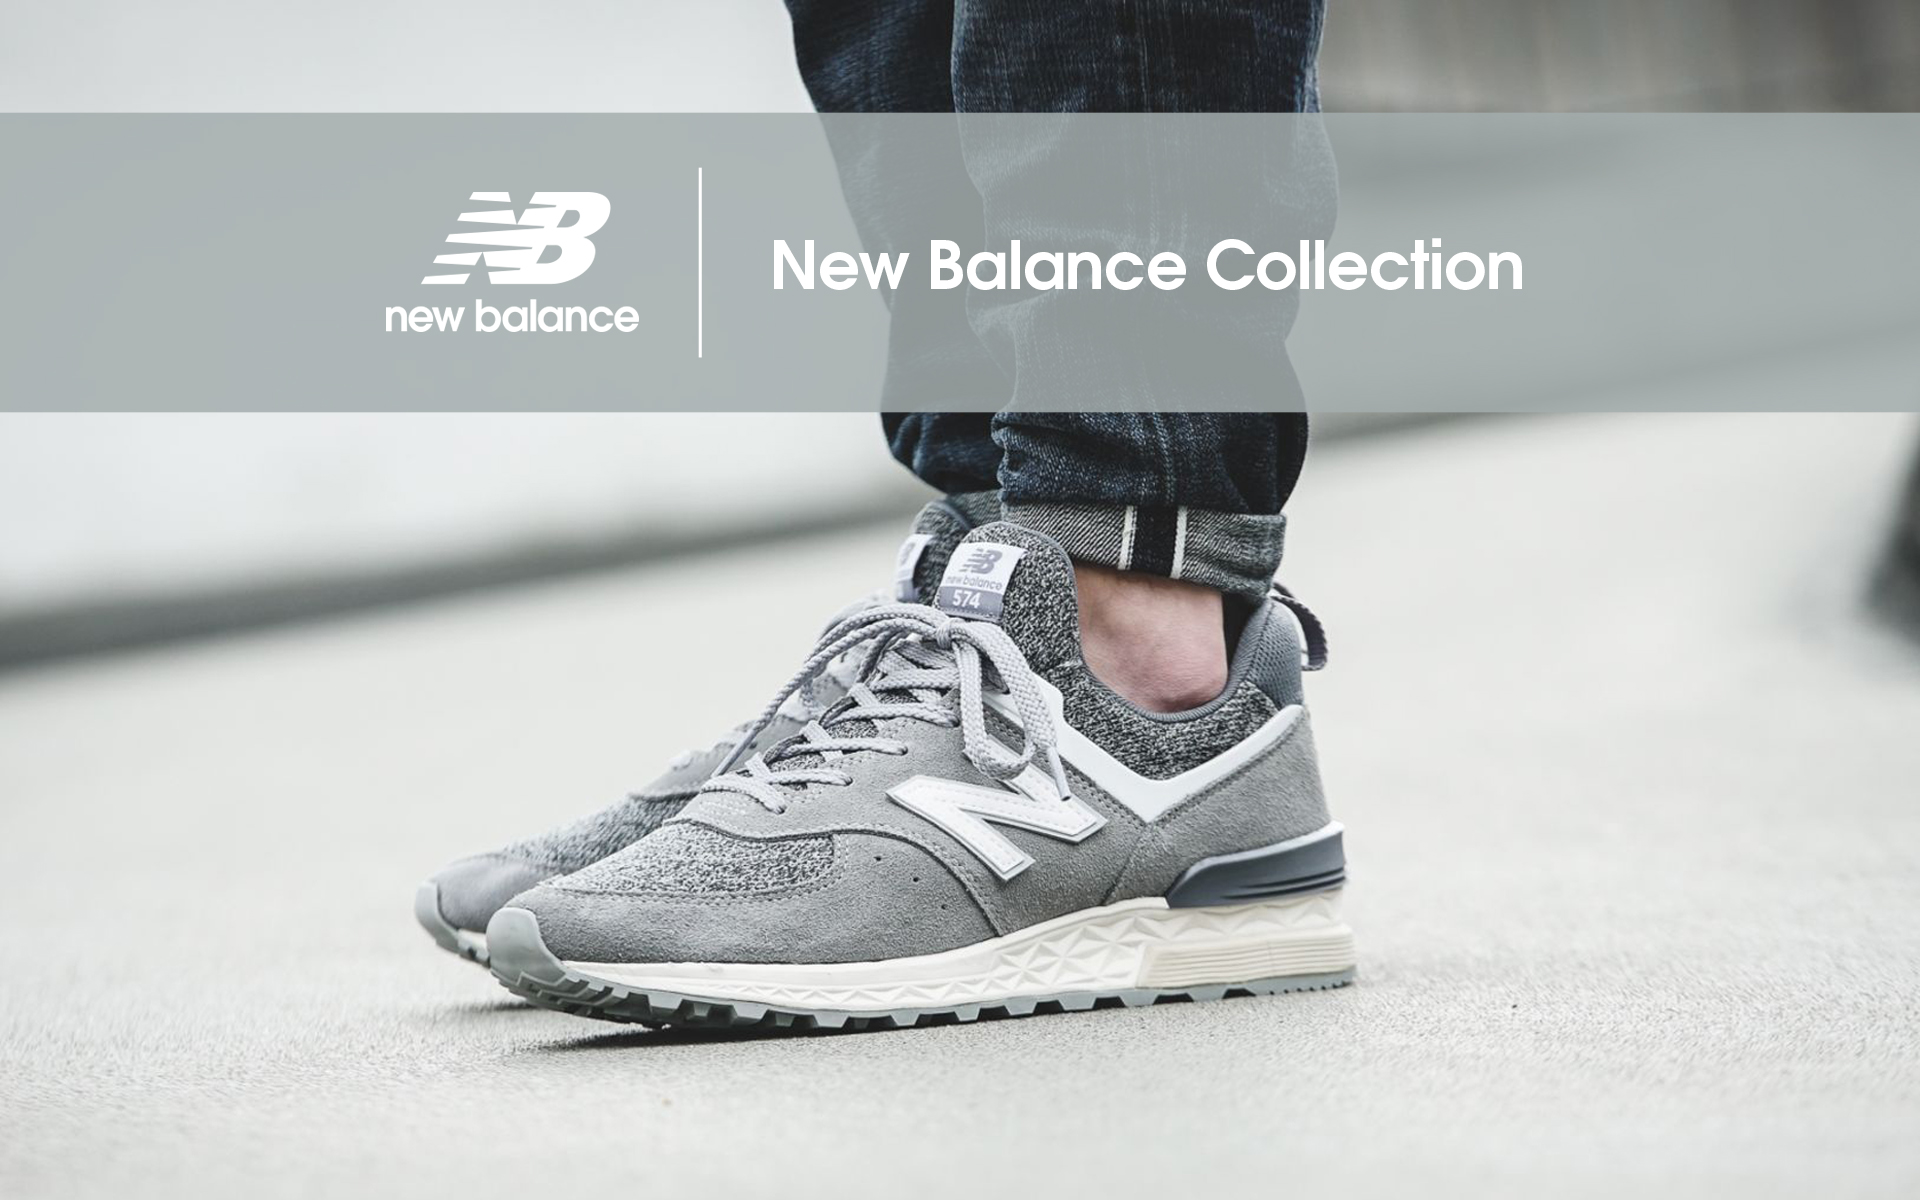 NB collection website